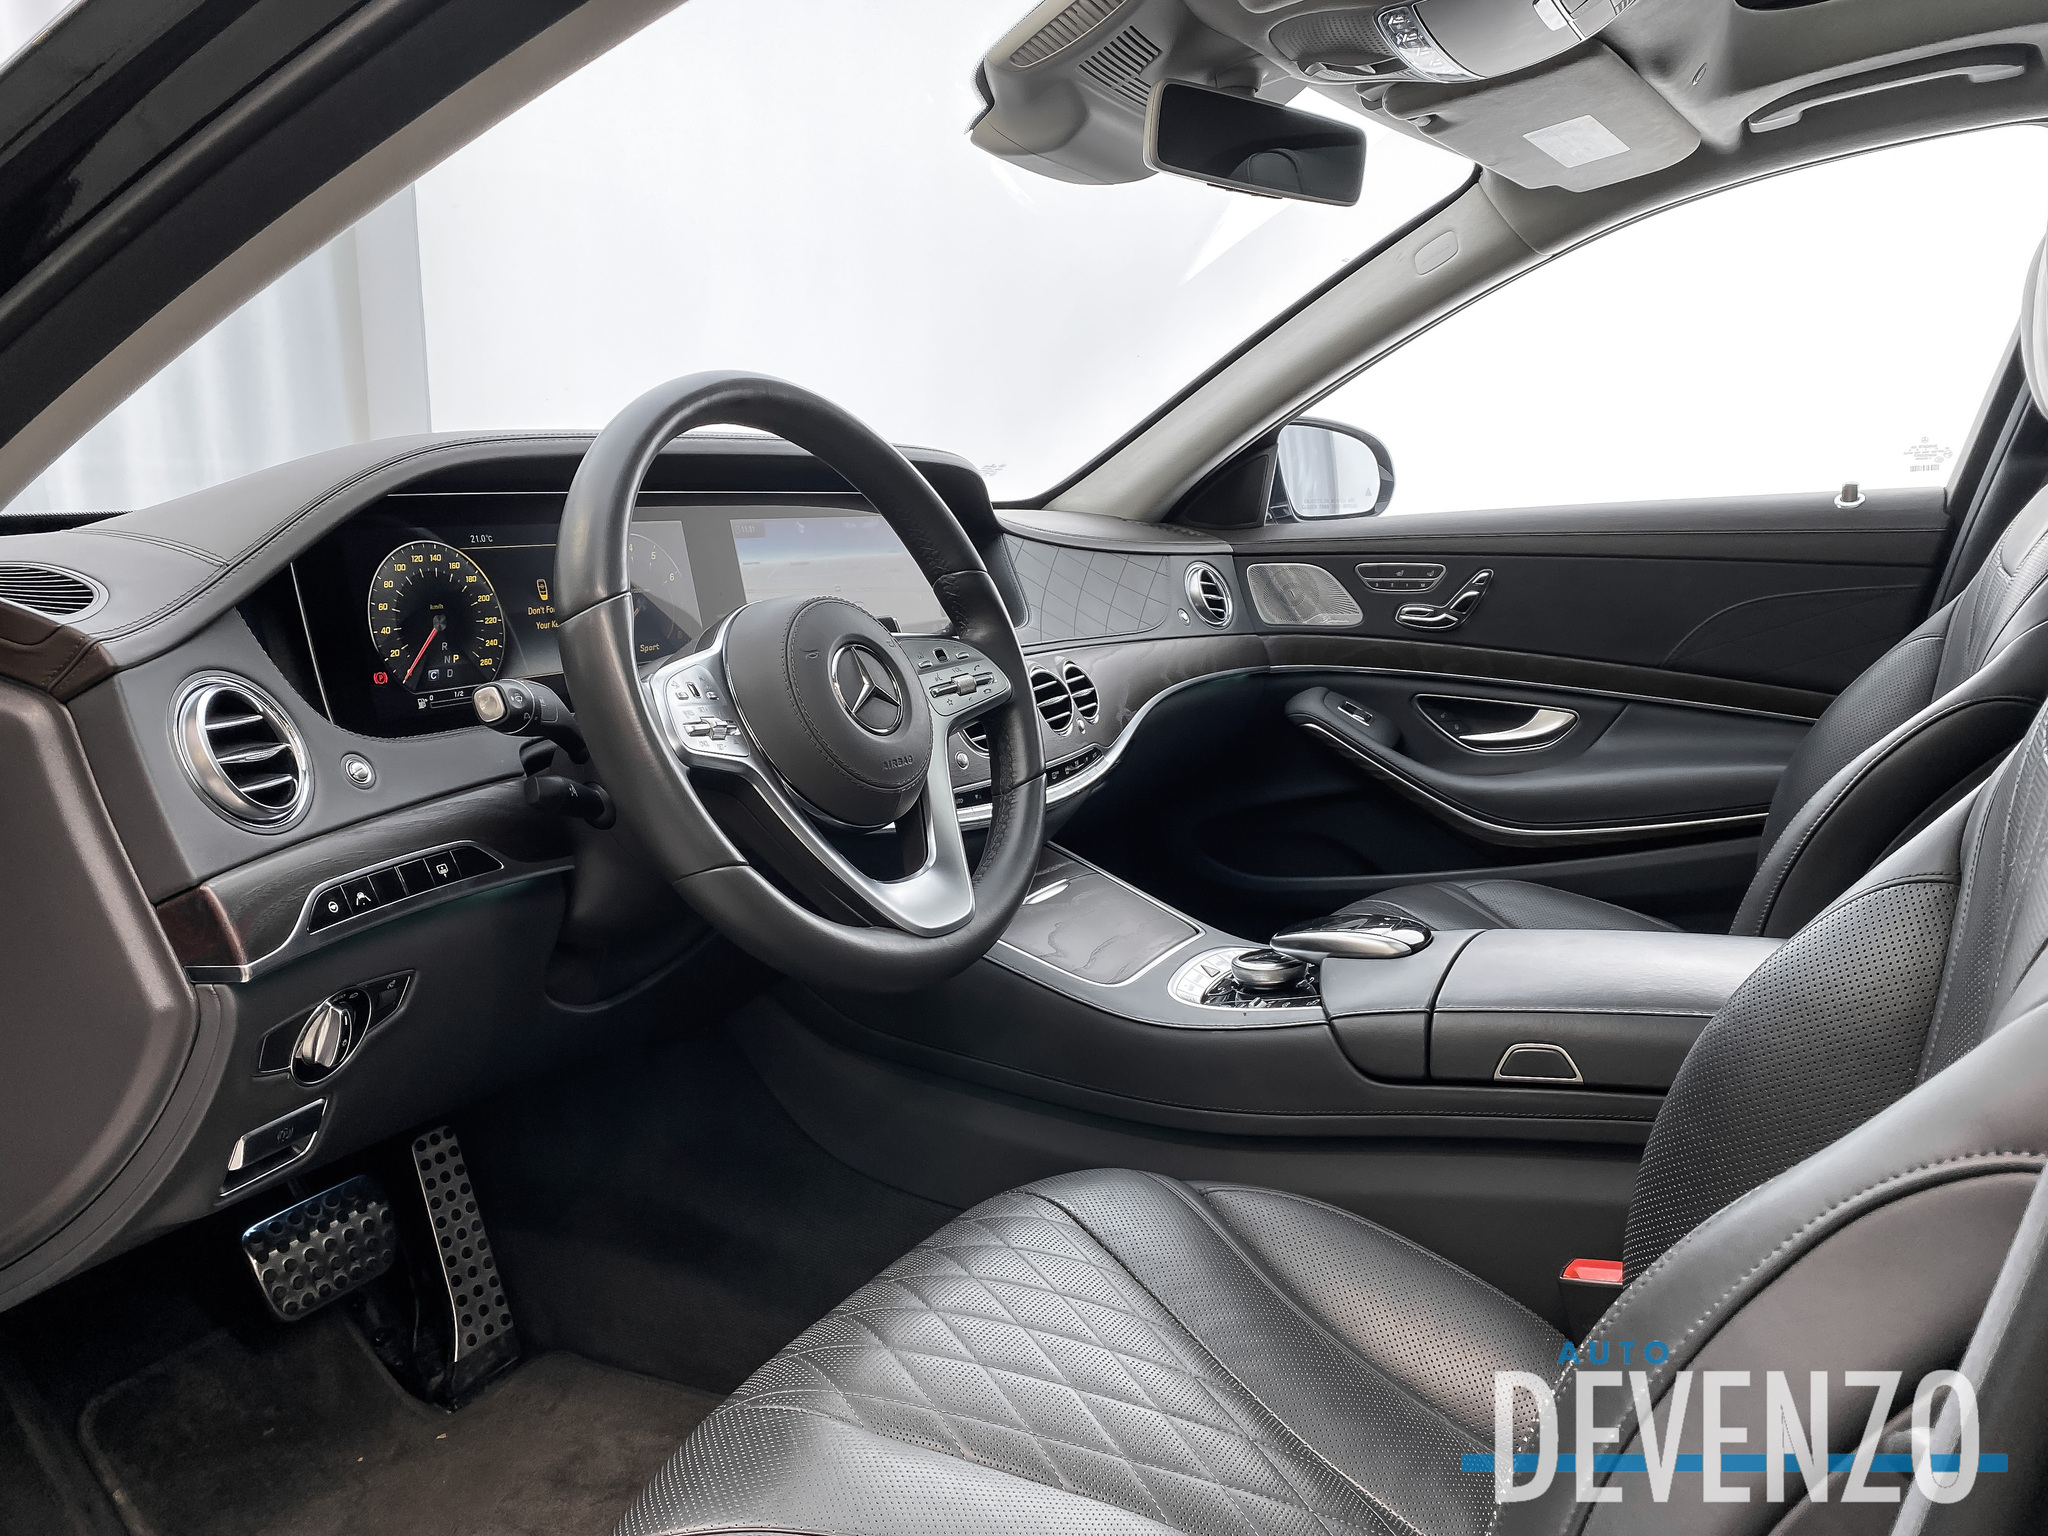 2019 Mercedes-Benz S-Class S560 4MATIC LWB REAR SEATING PACKAGE / INTELLIGENT complet